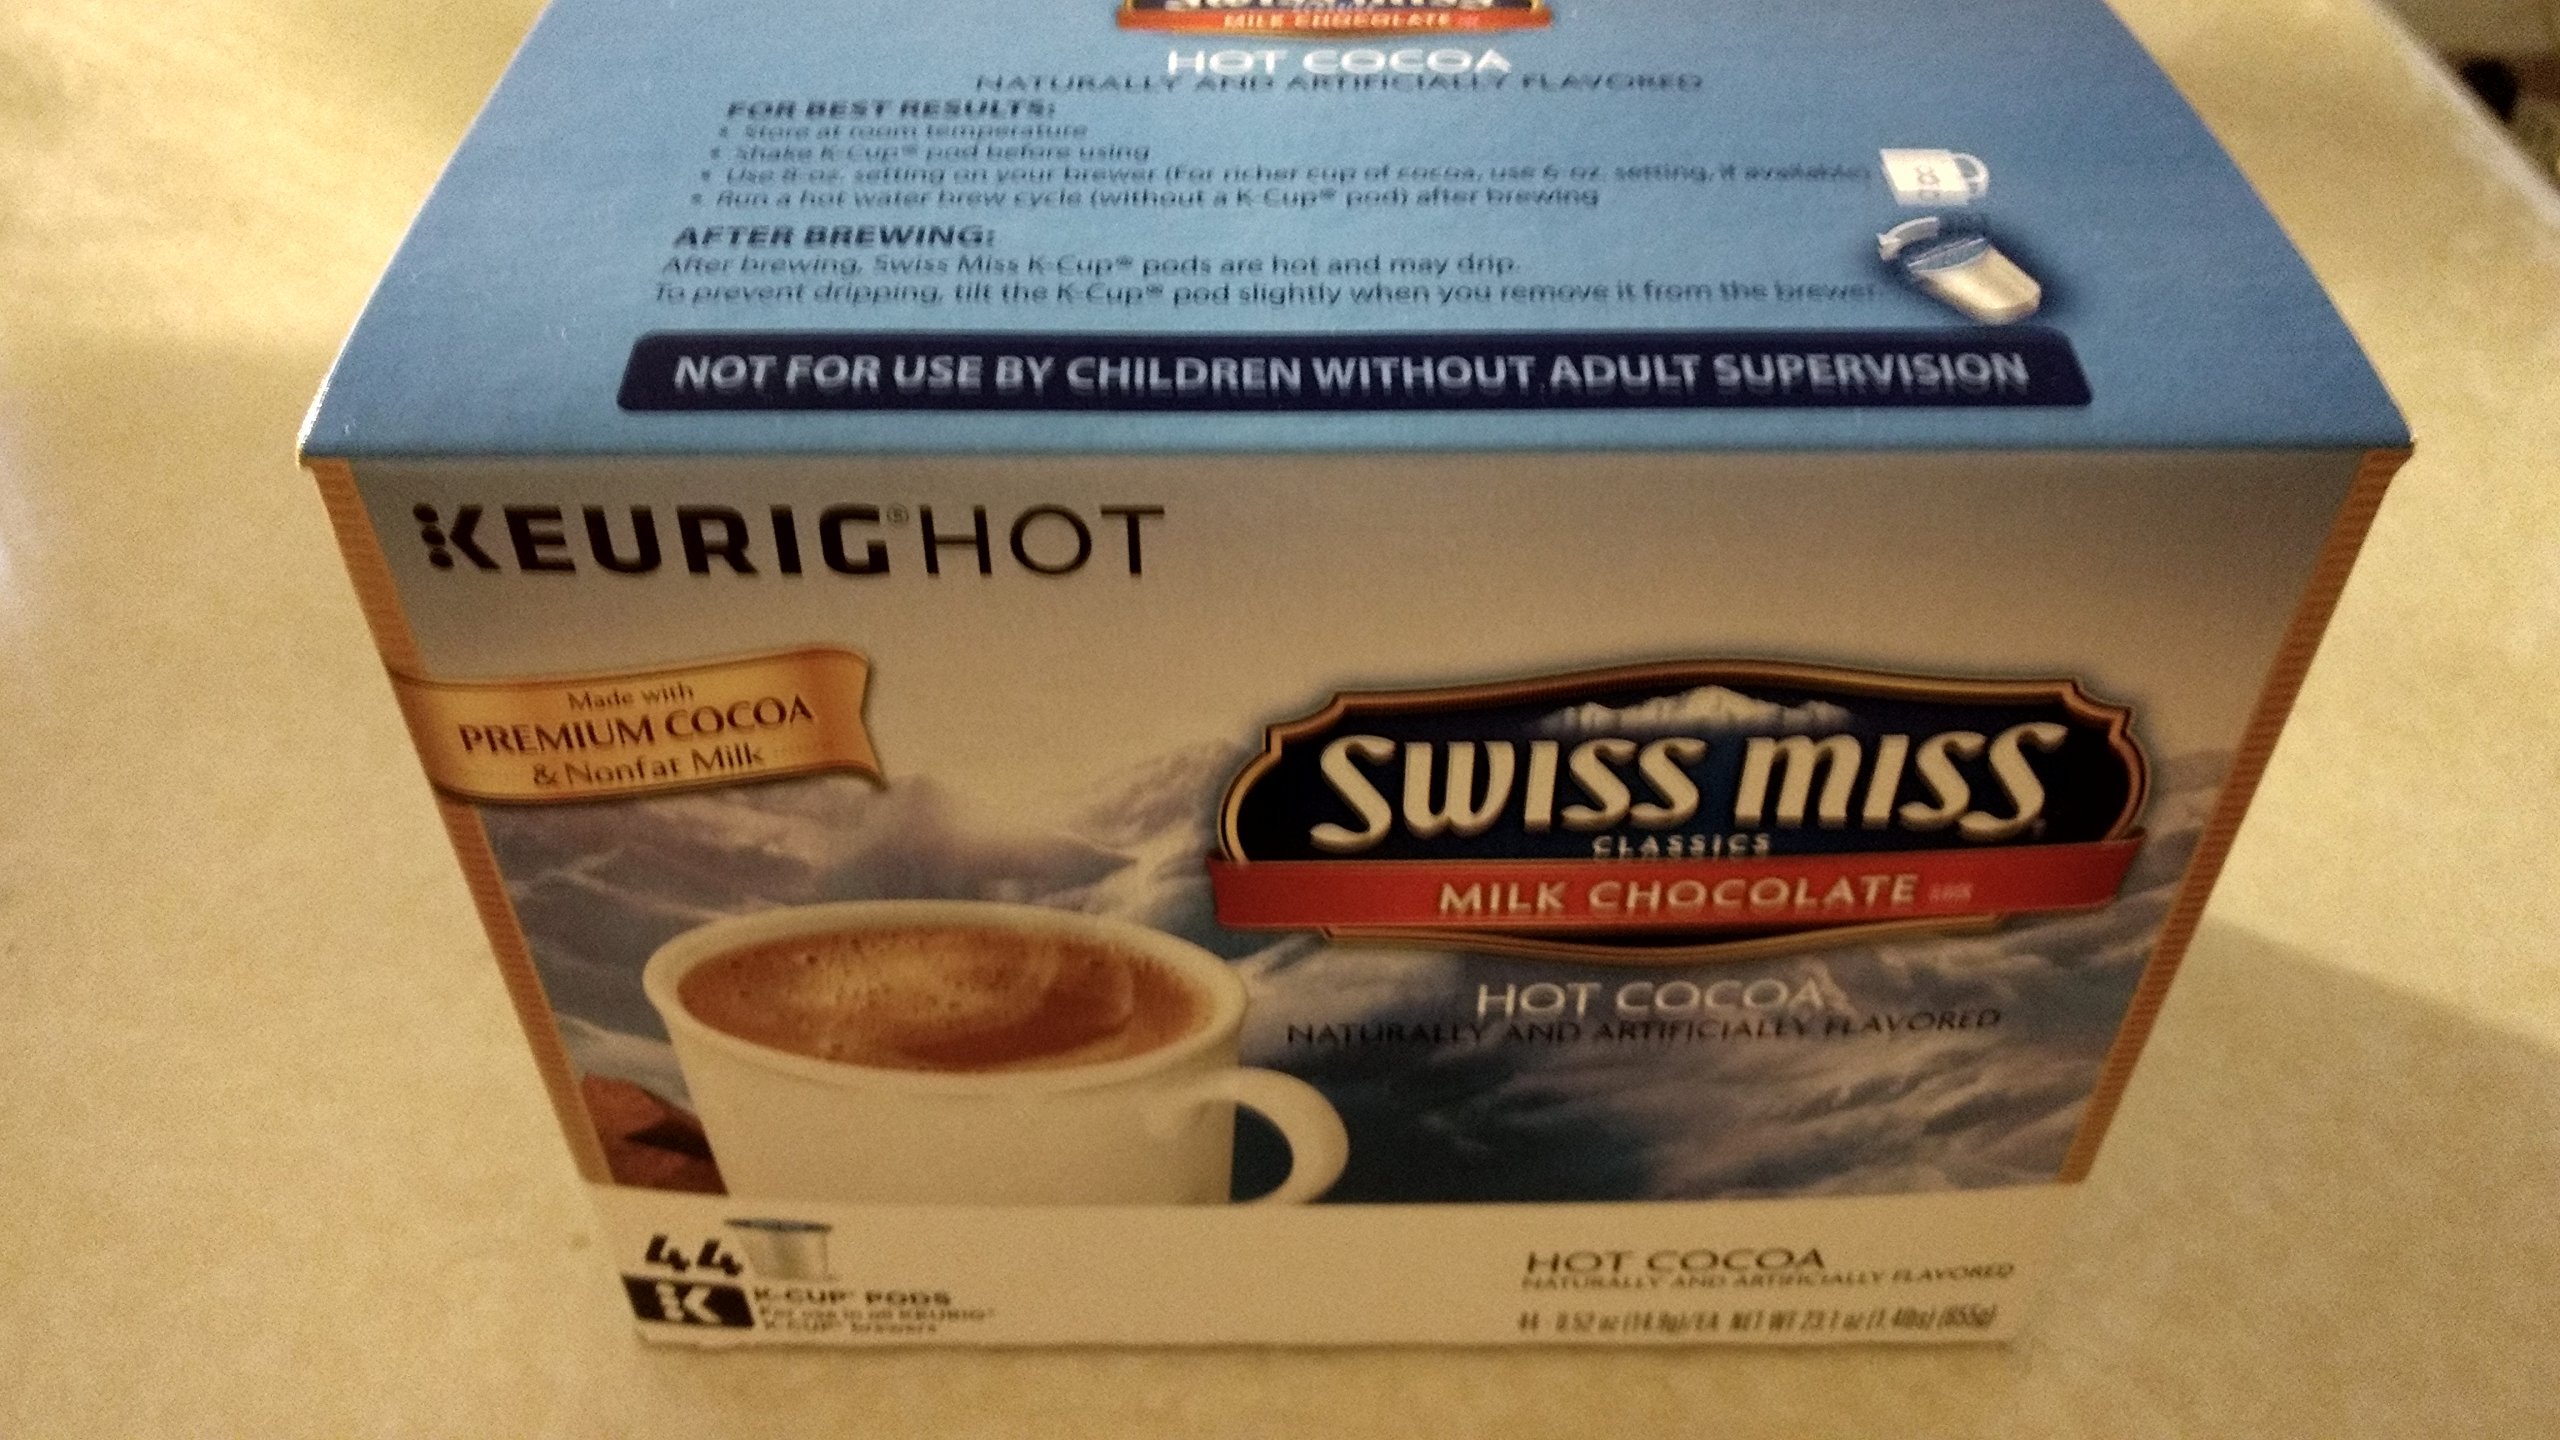 Keurig Swiss Miss Milk Chocolate Hot Cocoa 44-ct. K-Cup Pods Value Pack (Packaging May Vary) by Swiss Miss